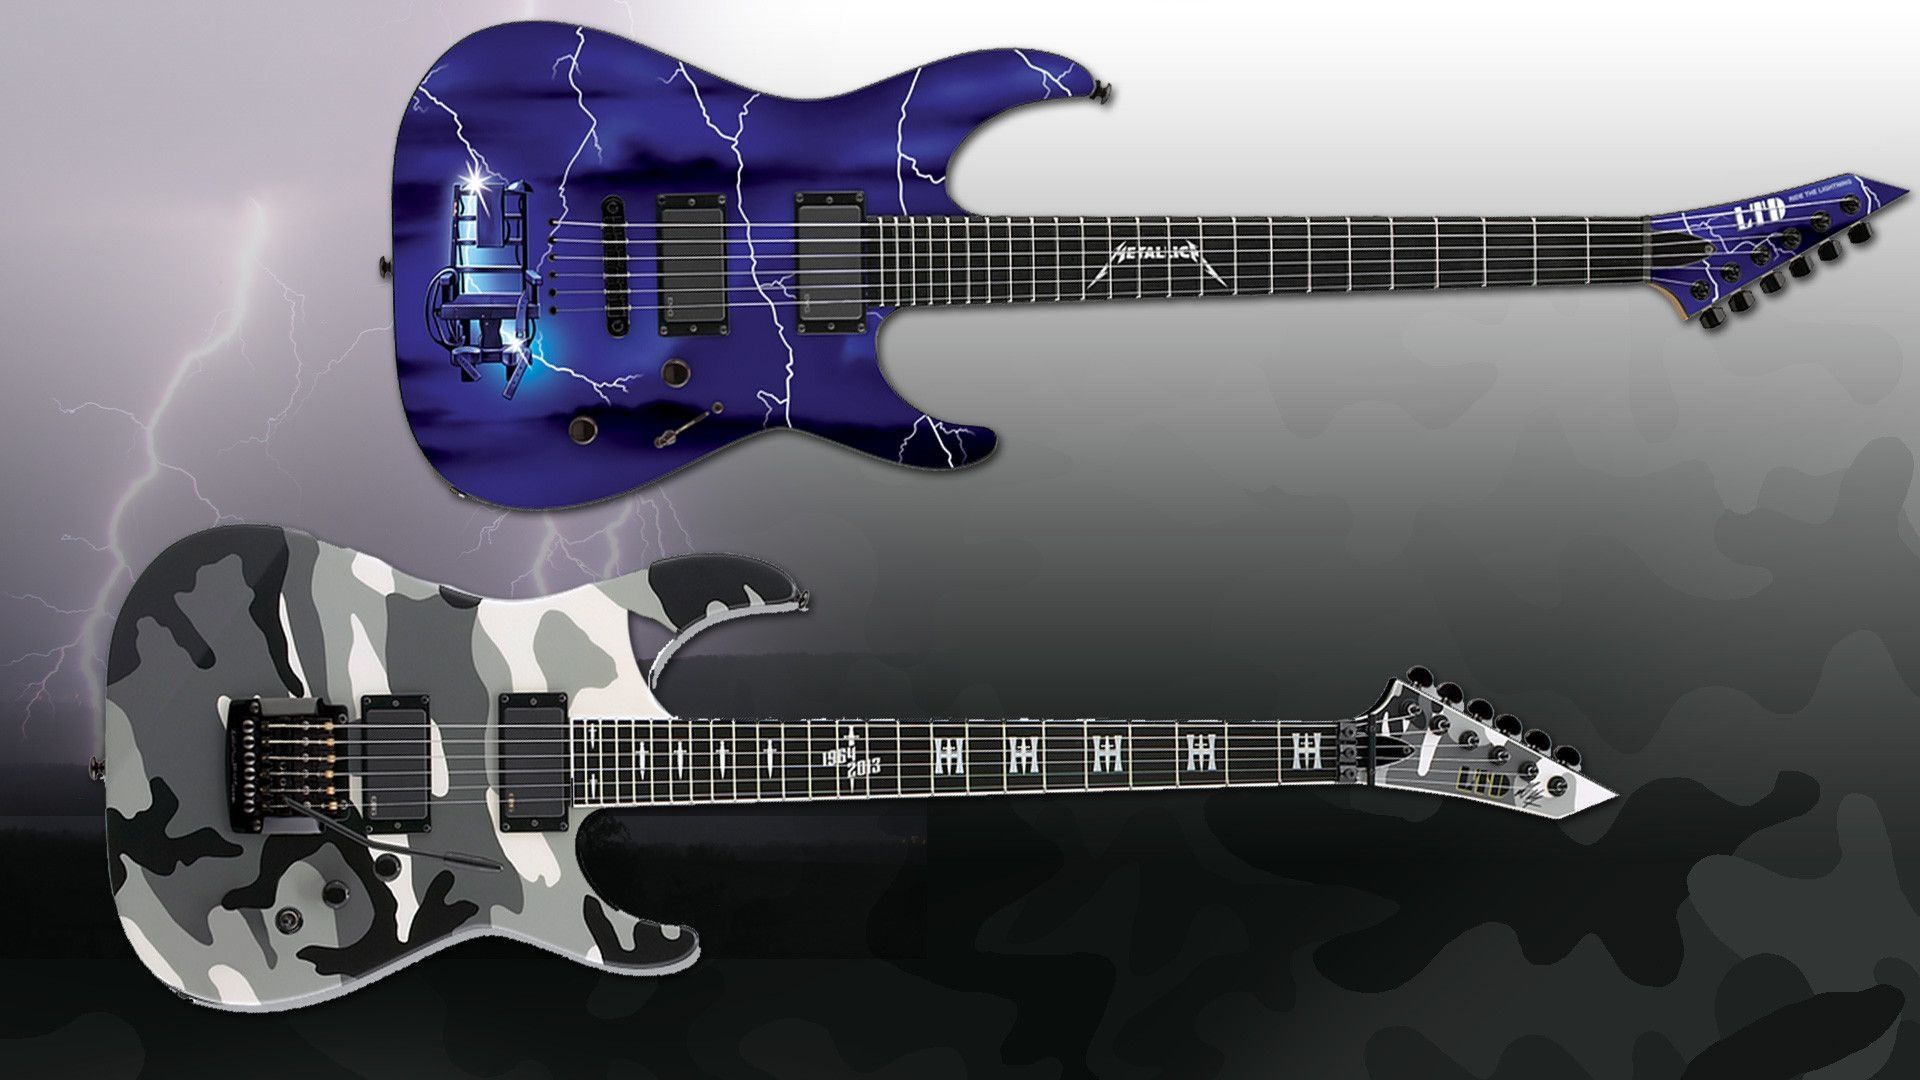 Two Electric Guitars, Background Wallpaper HD